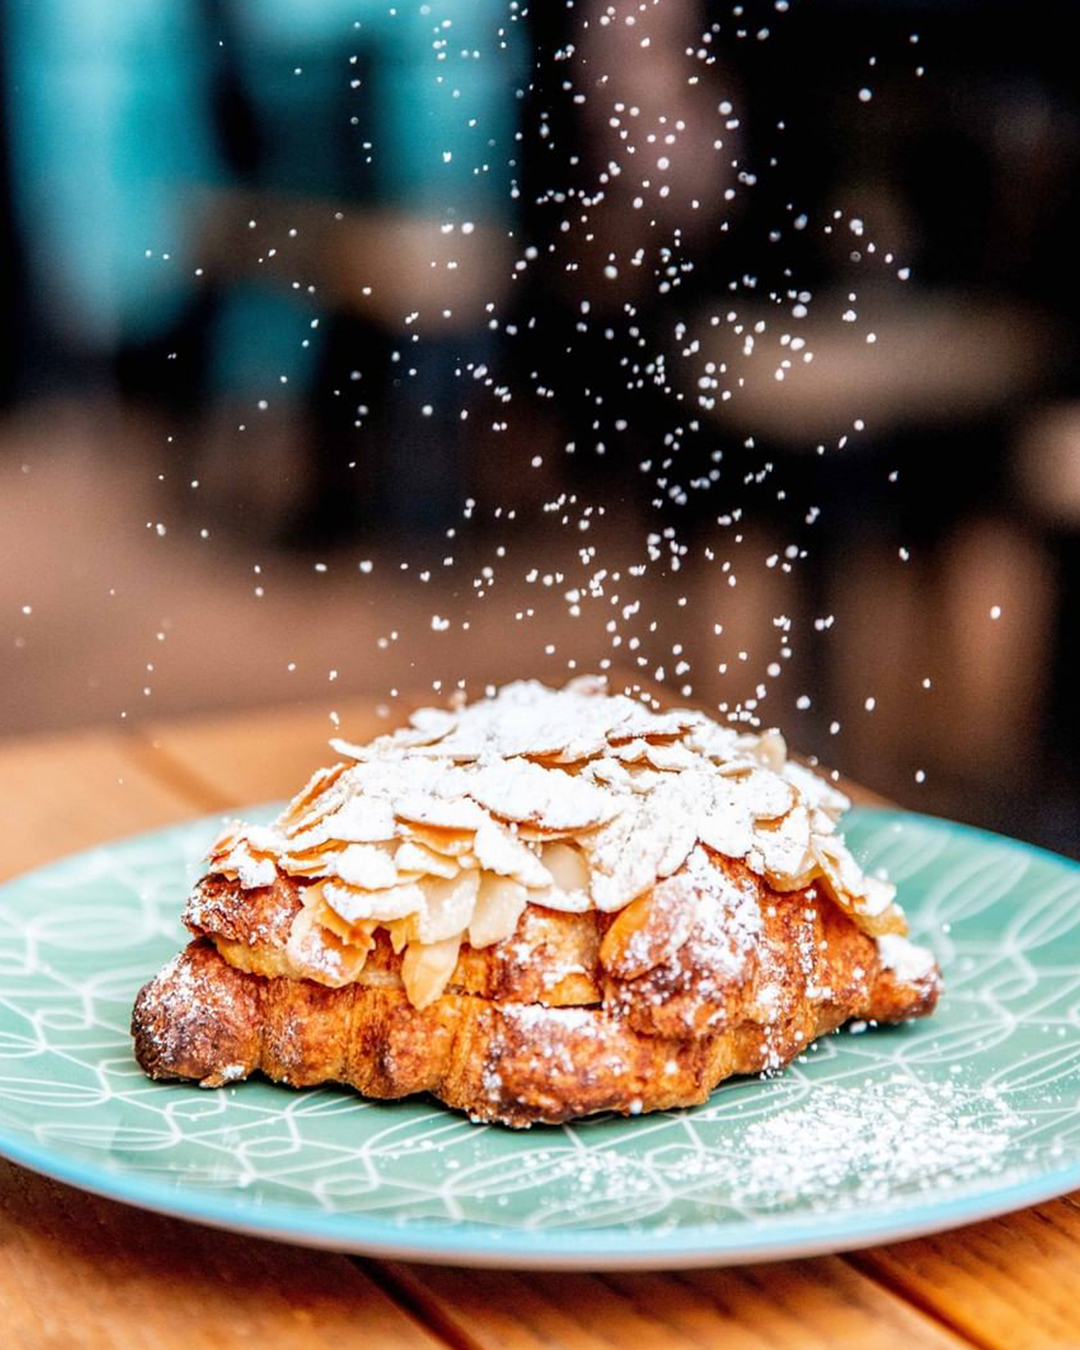 A flaky almond croissant on a plate, topped with almonds and being dusted with icing sugar.